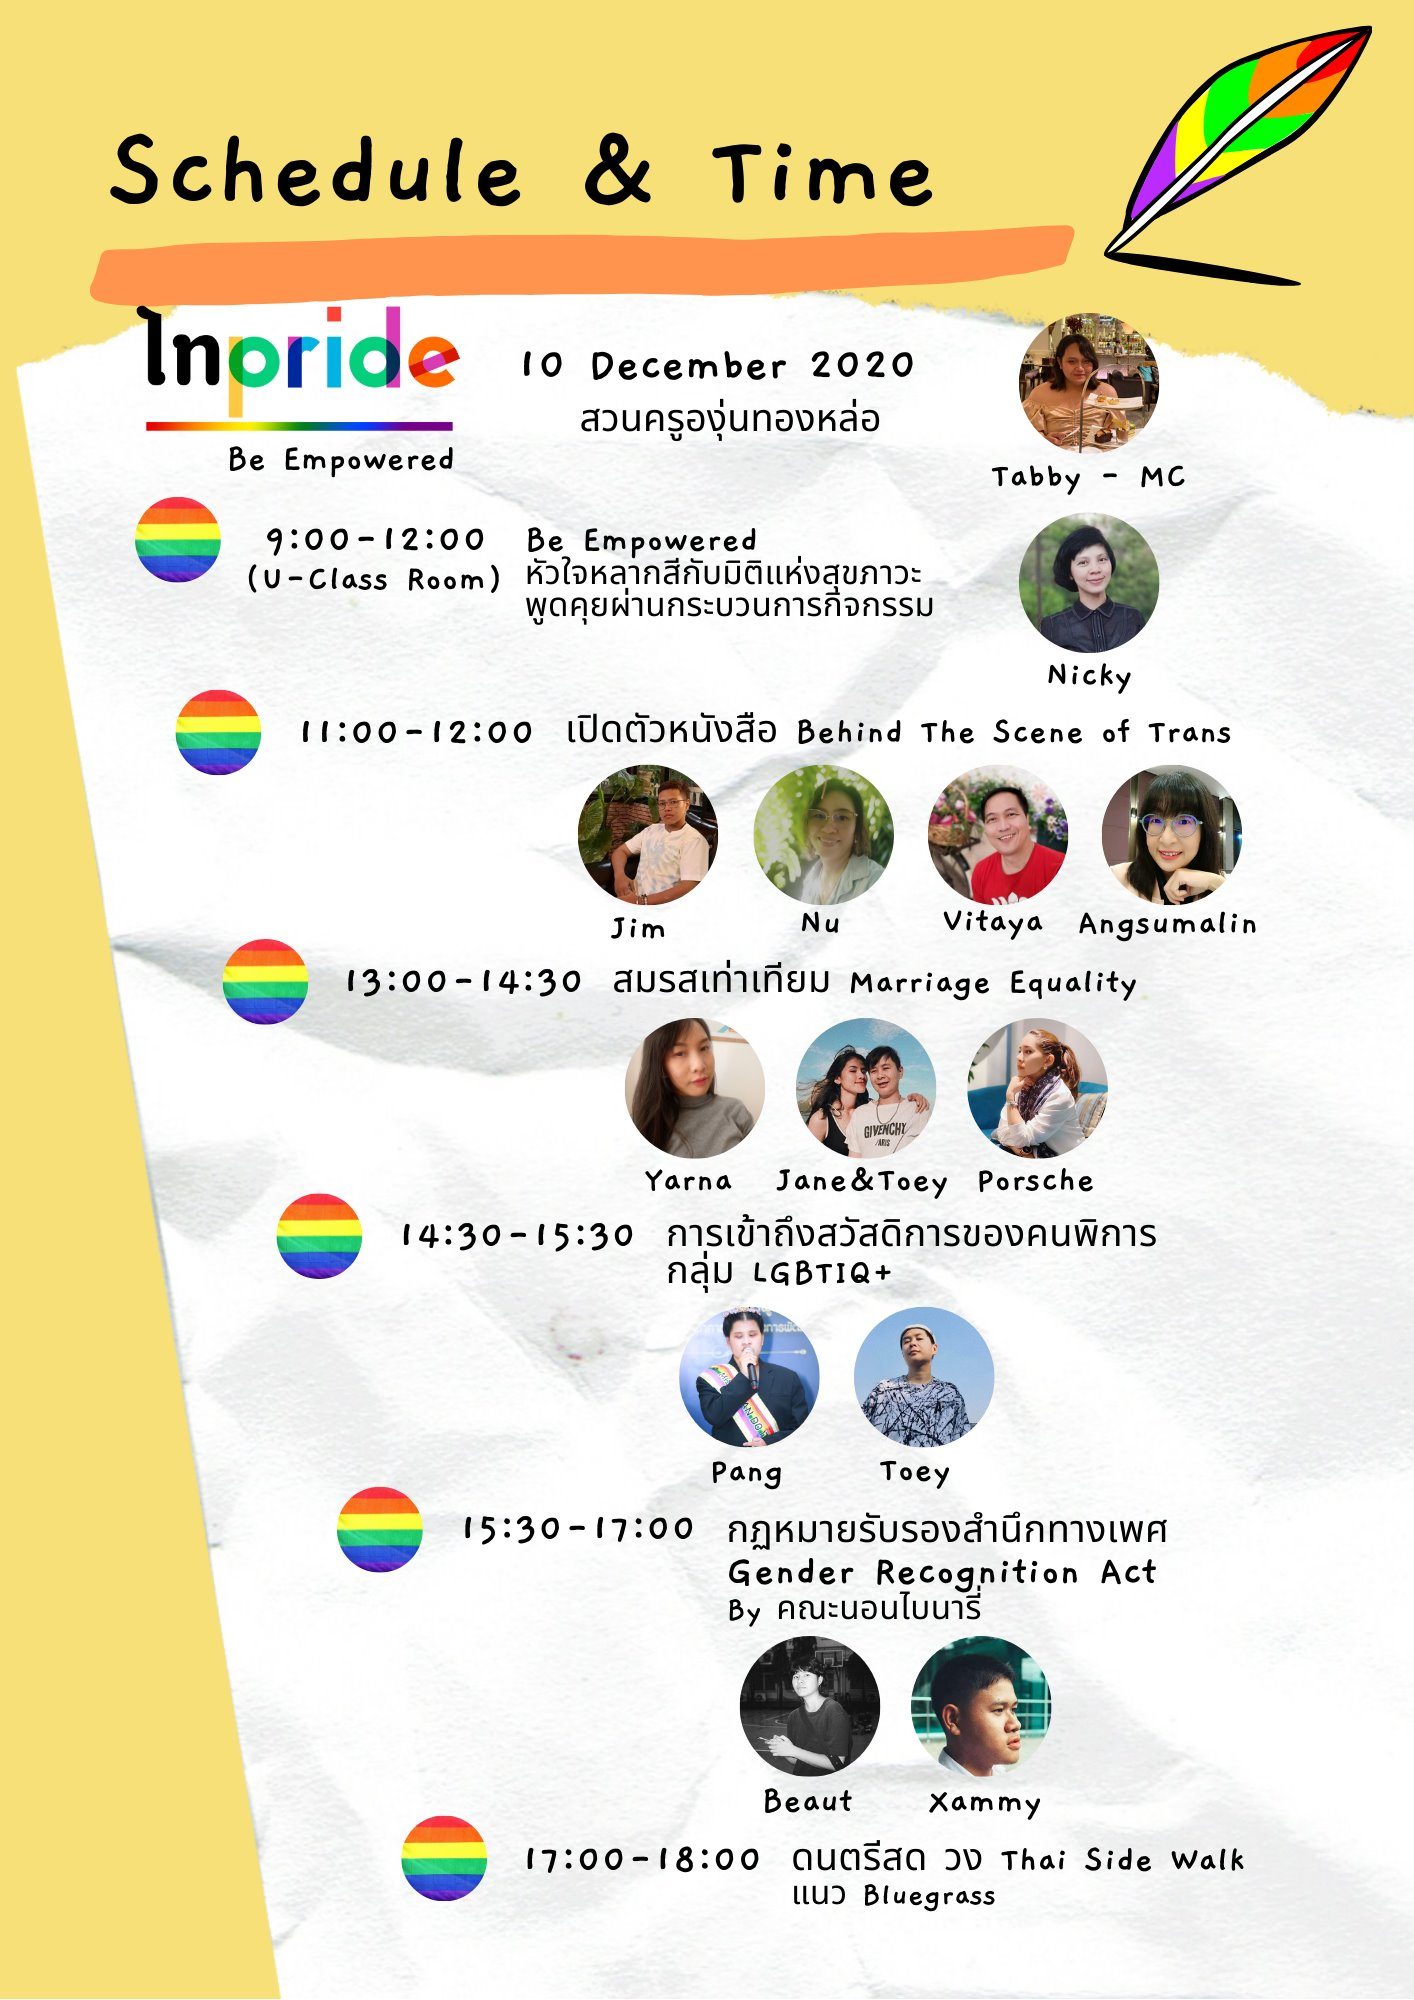 tai pride 2020 bangkok สมรสเท่าเทียม equal marriage law thailand wonders & weddings saga nonbinary